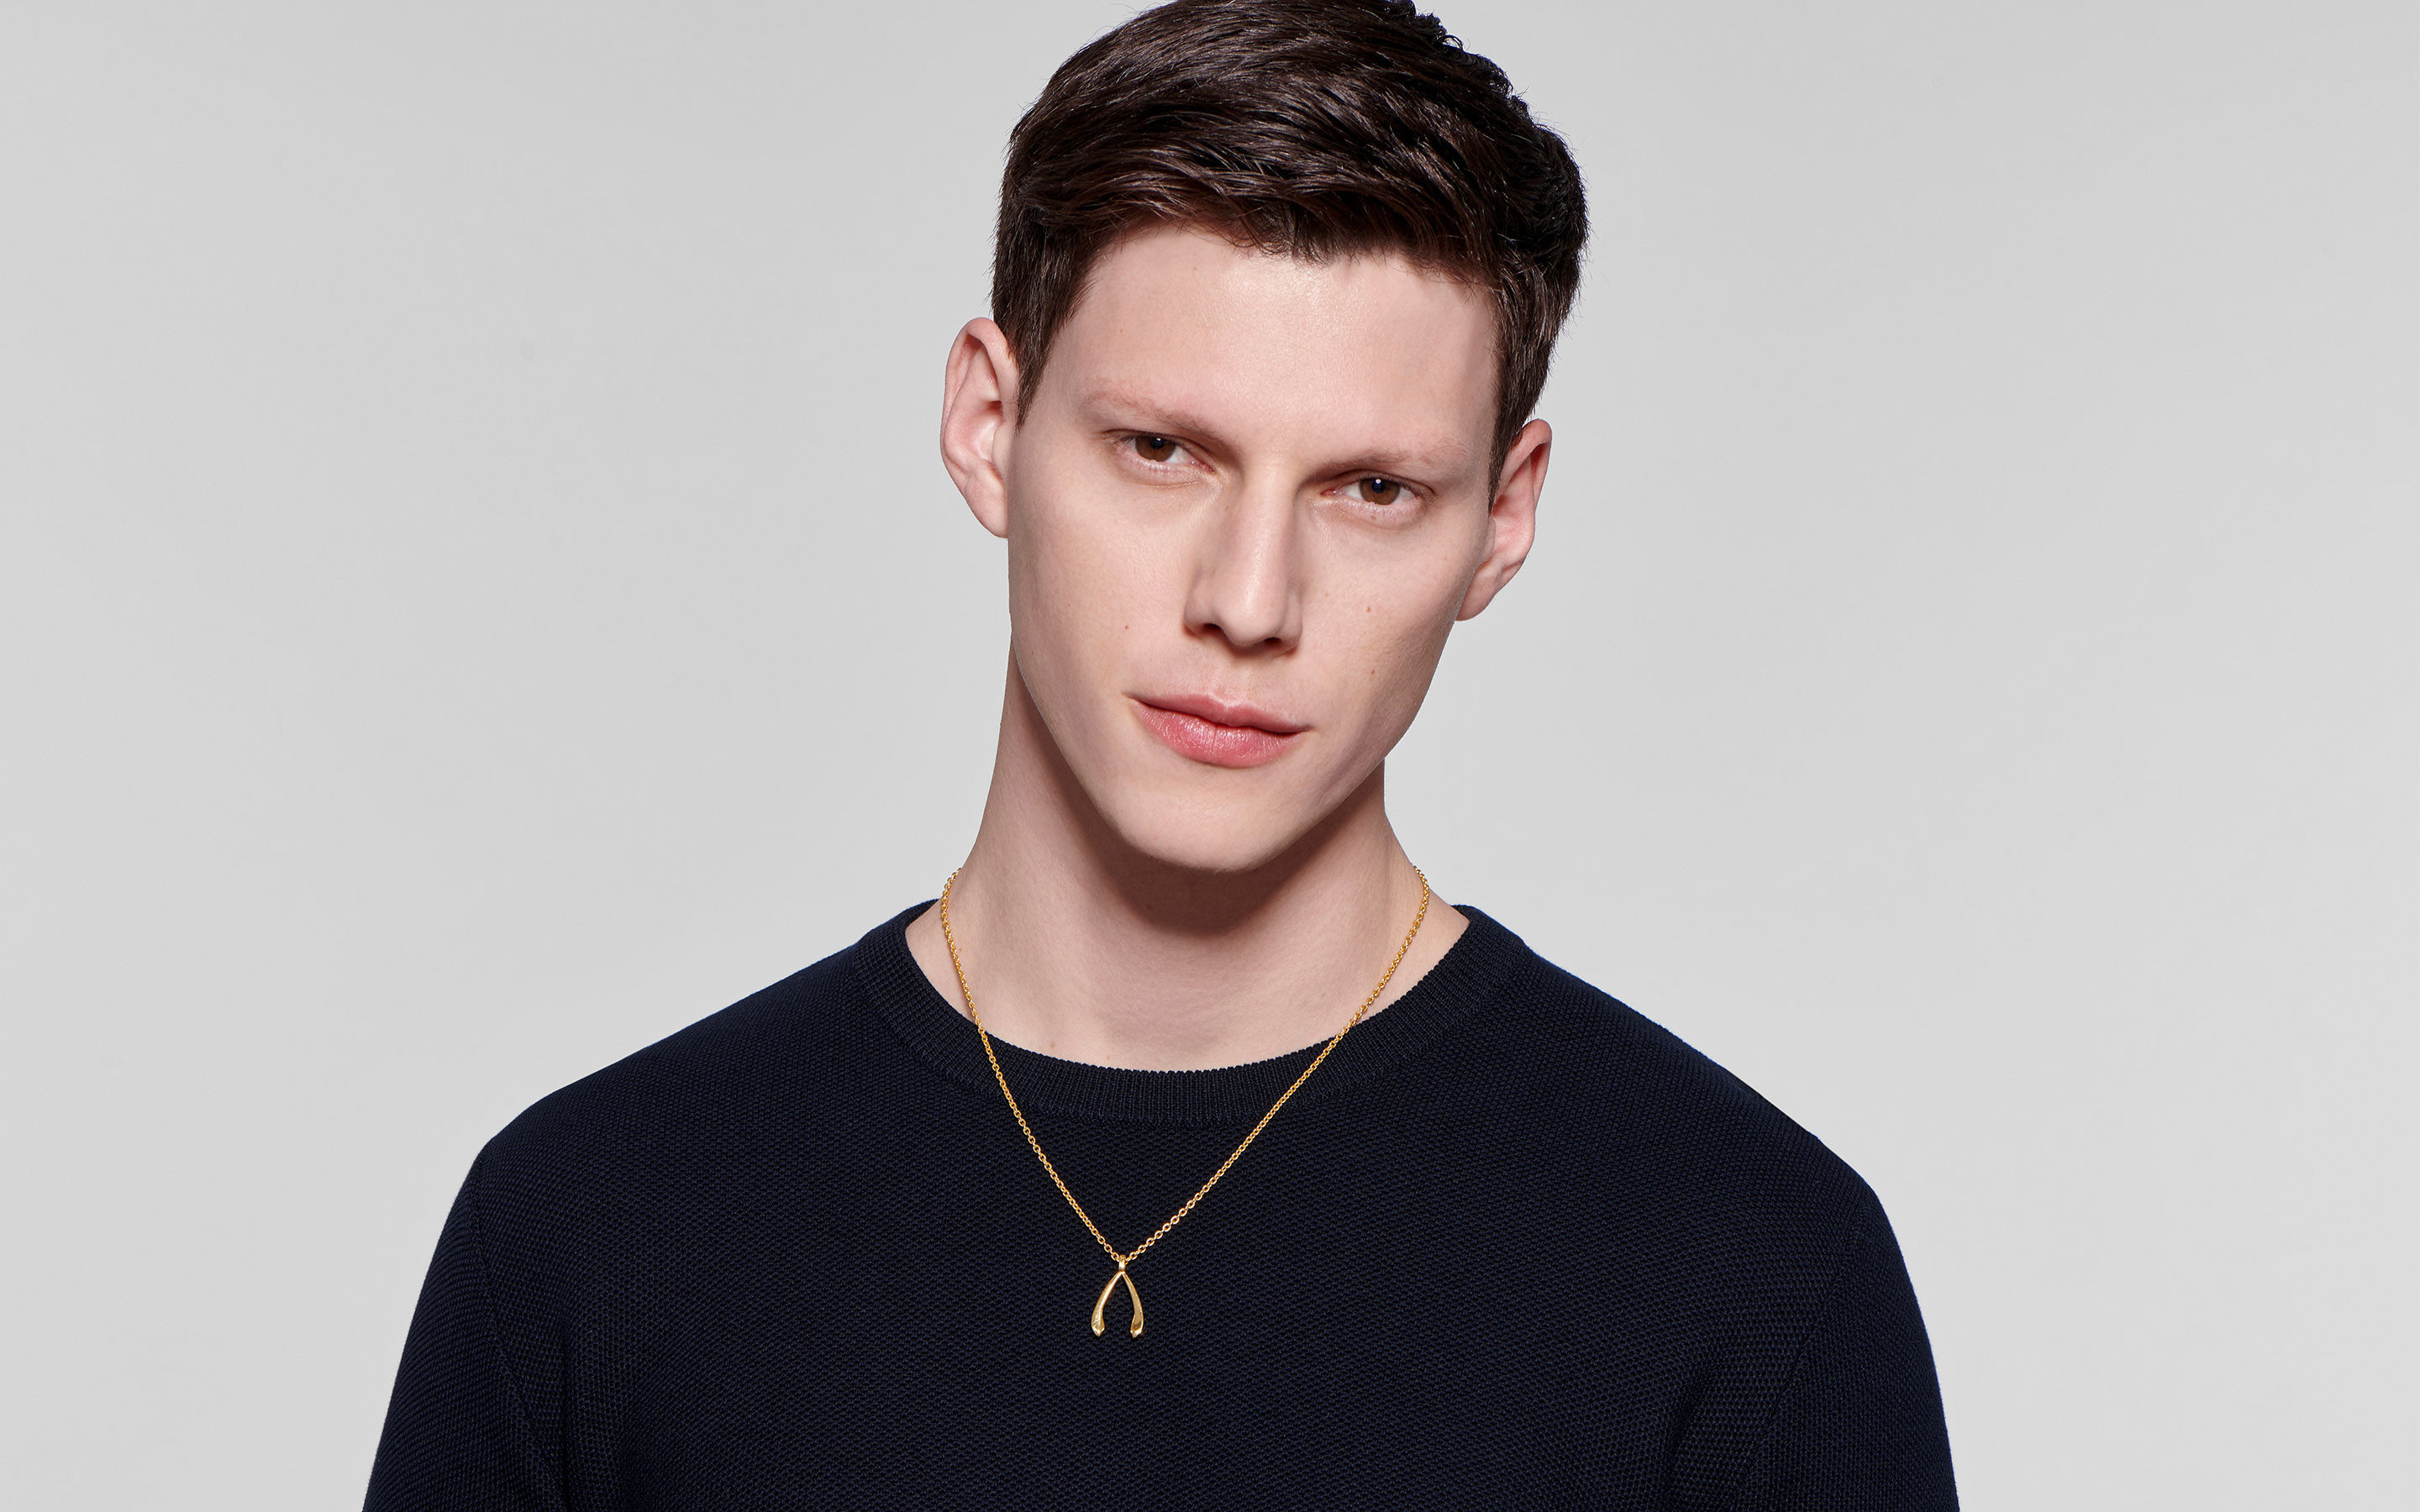 smoldering male model wearing 22 karat gold necklace with wishbone pendant